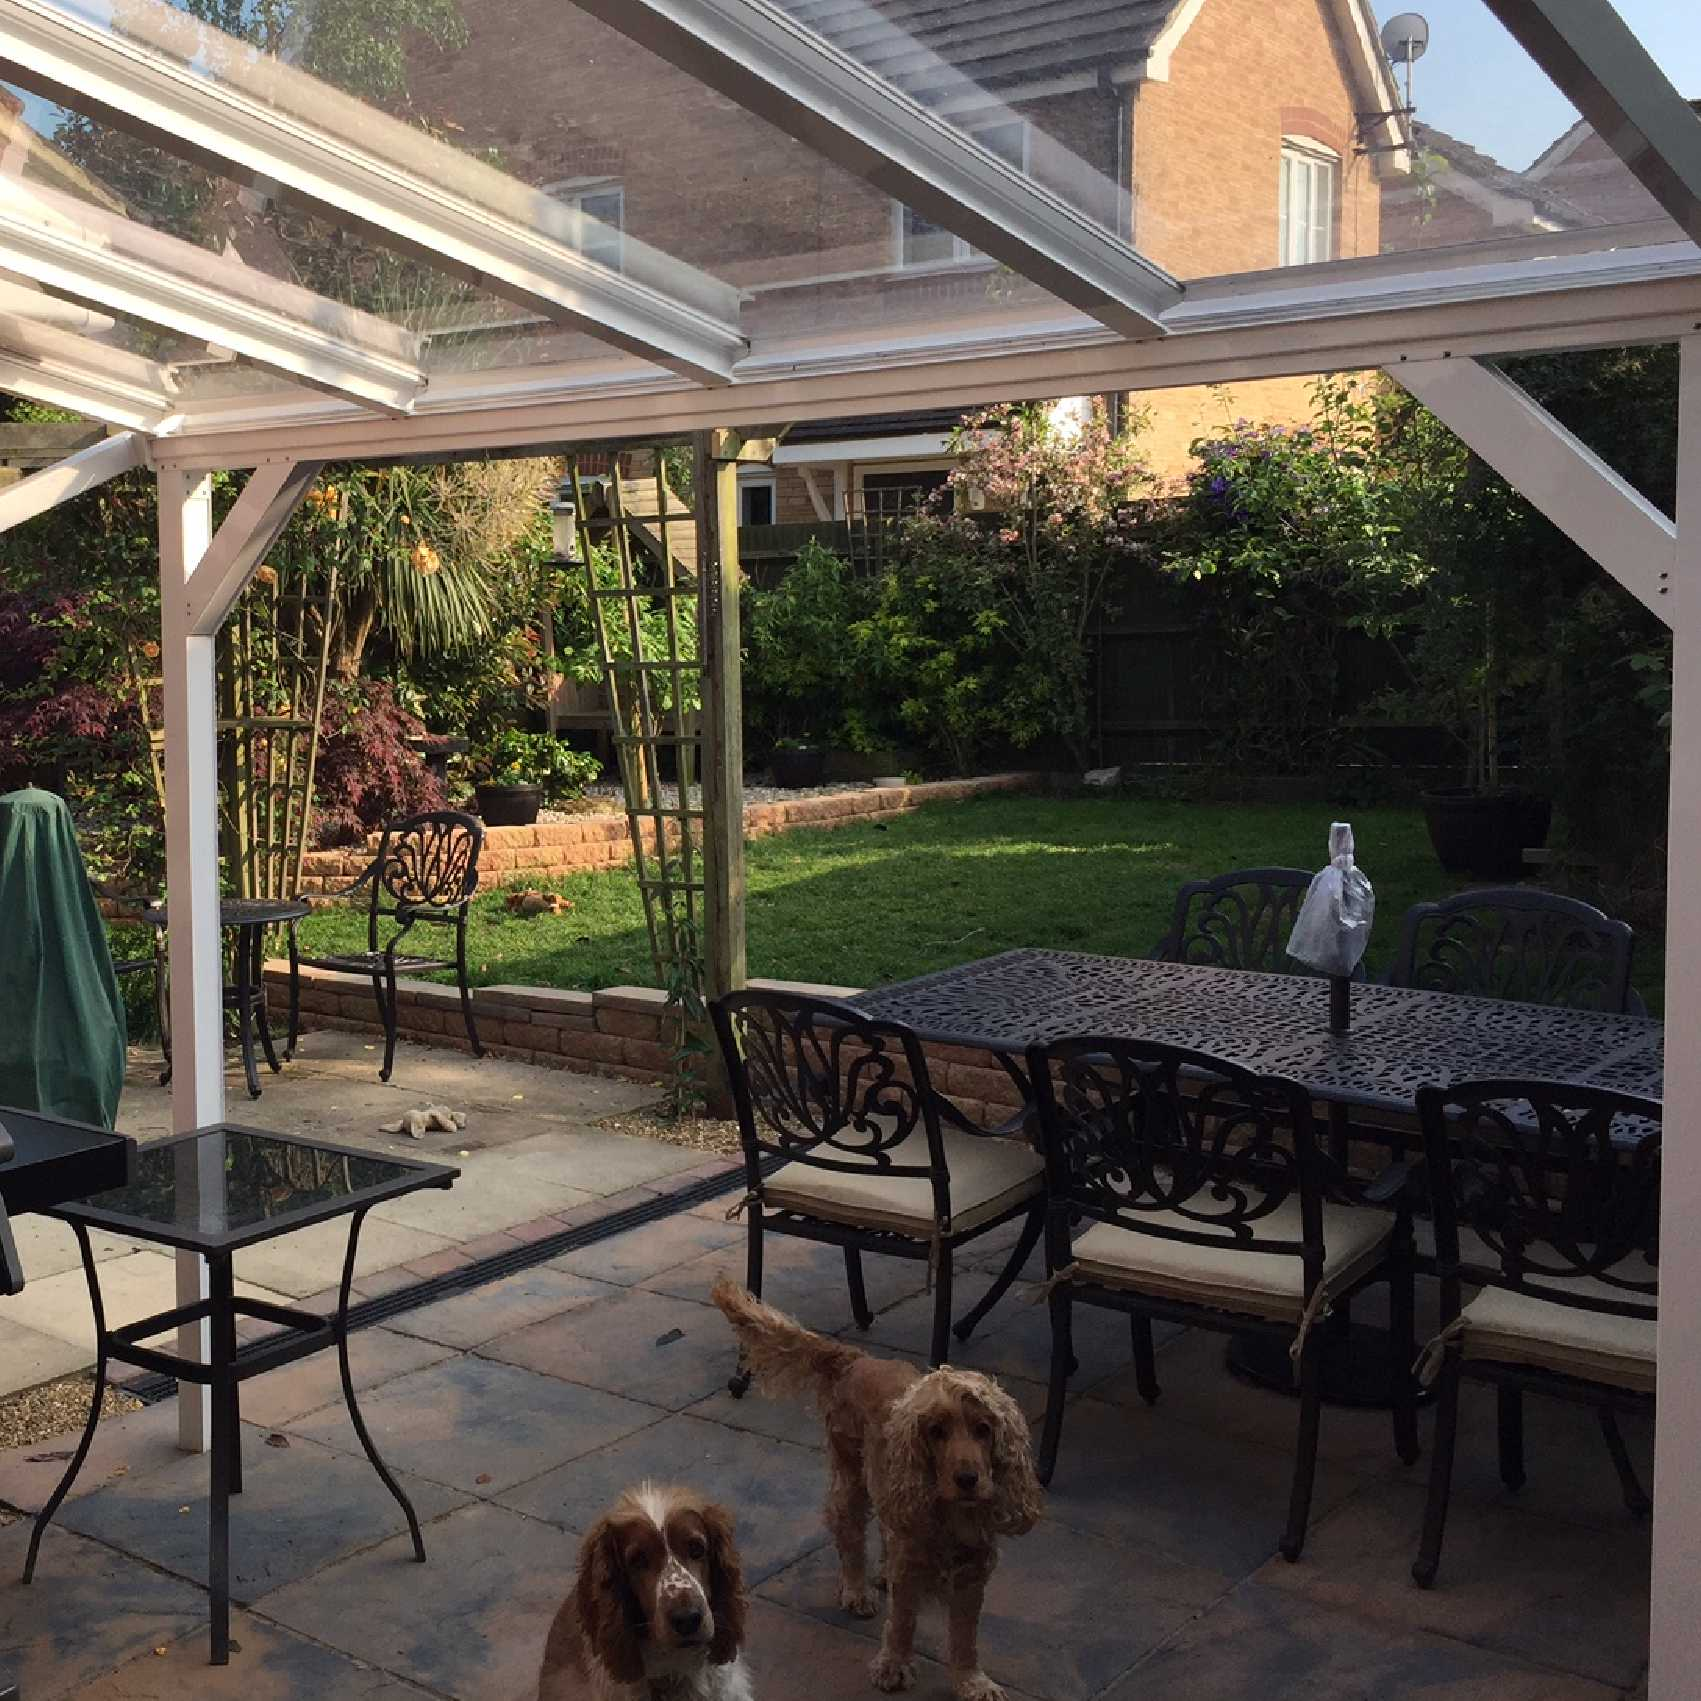 Affordable Omega Smart White Lean-To Canopy with 6mm Glass Clear Plate Polycarbonate Glazing - 5.6m (W) x 3.0m (P), (3) Supporting Posts